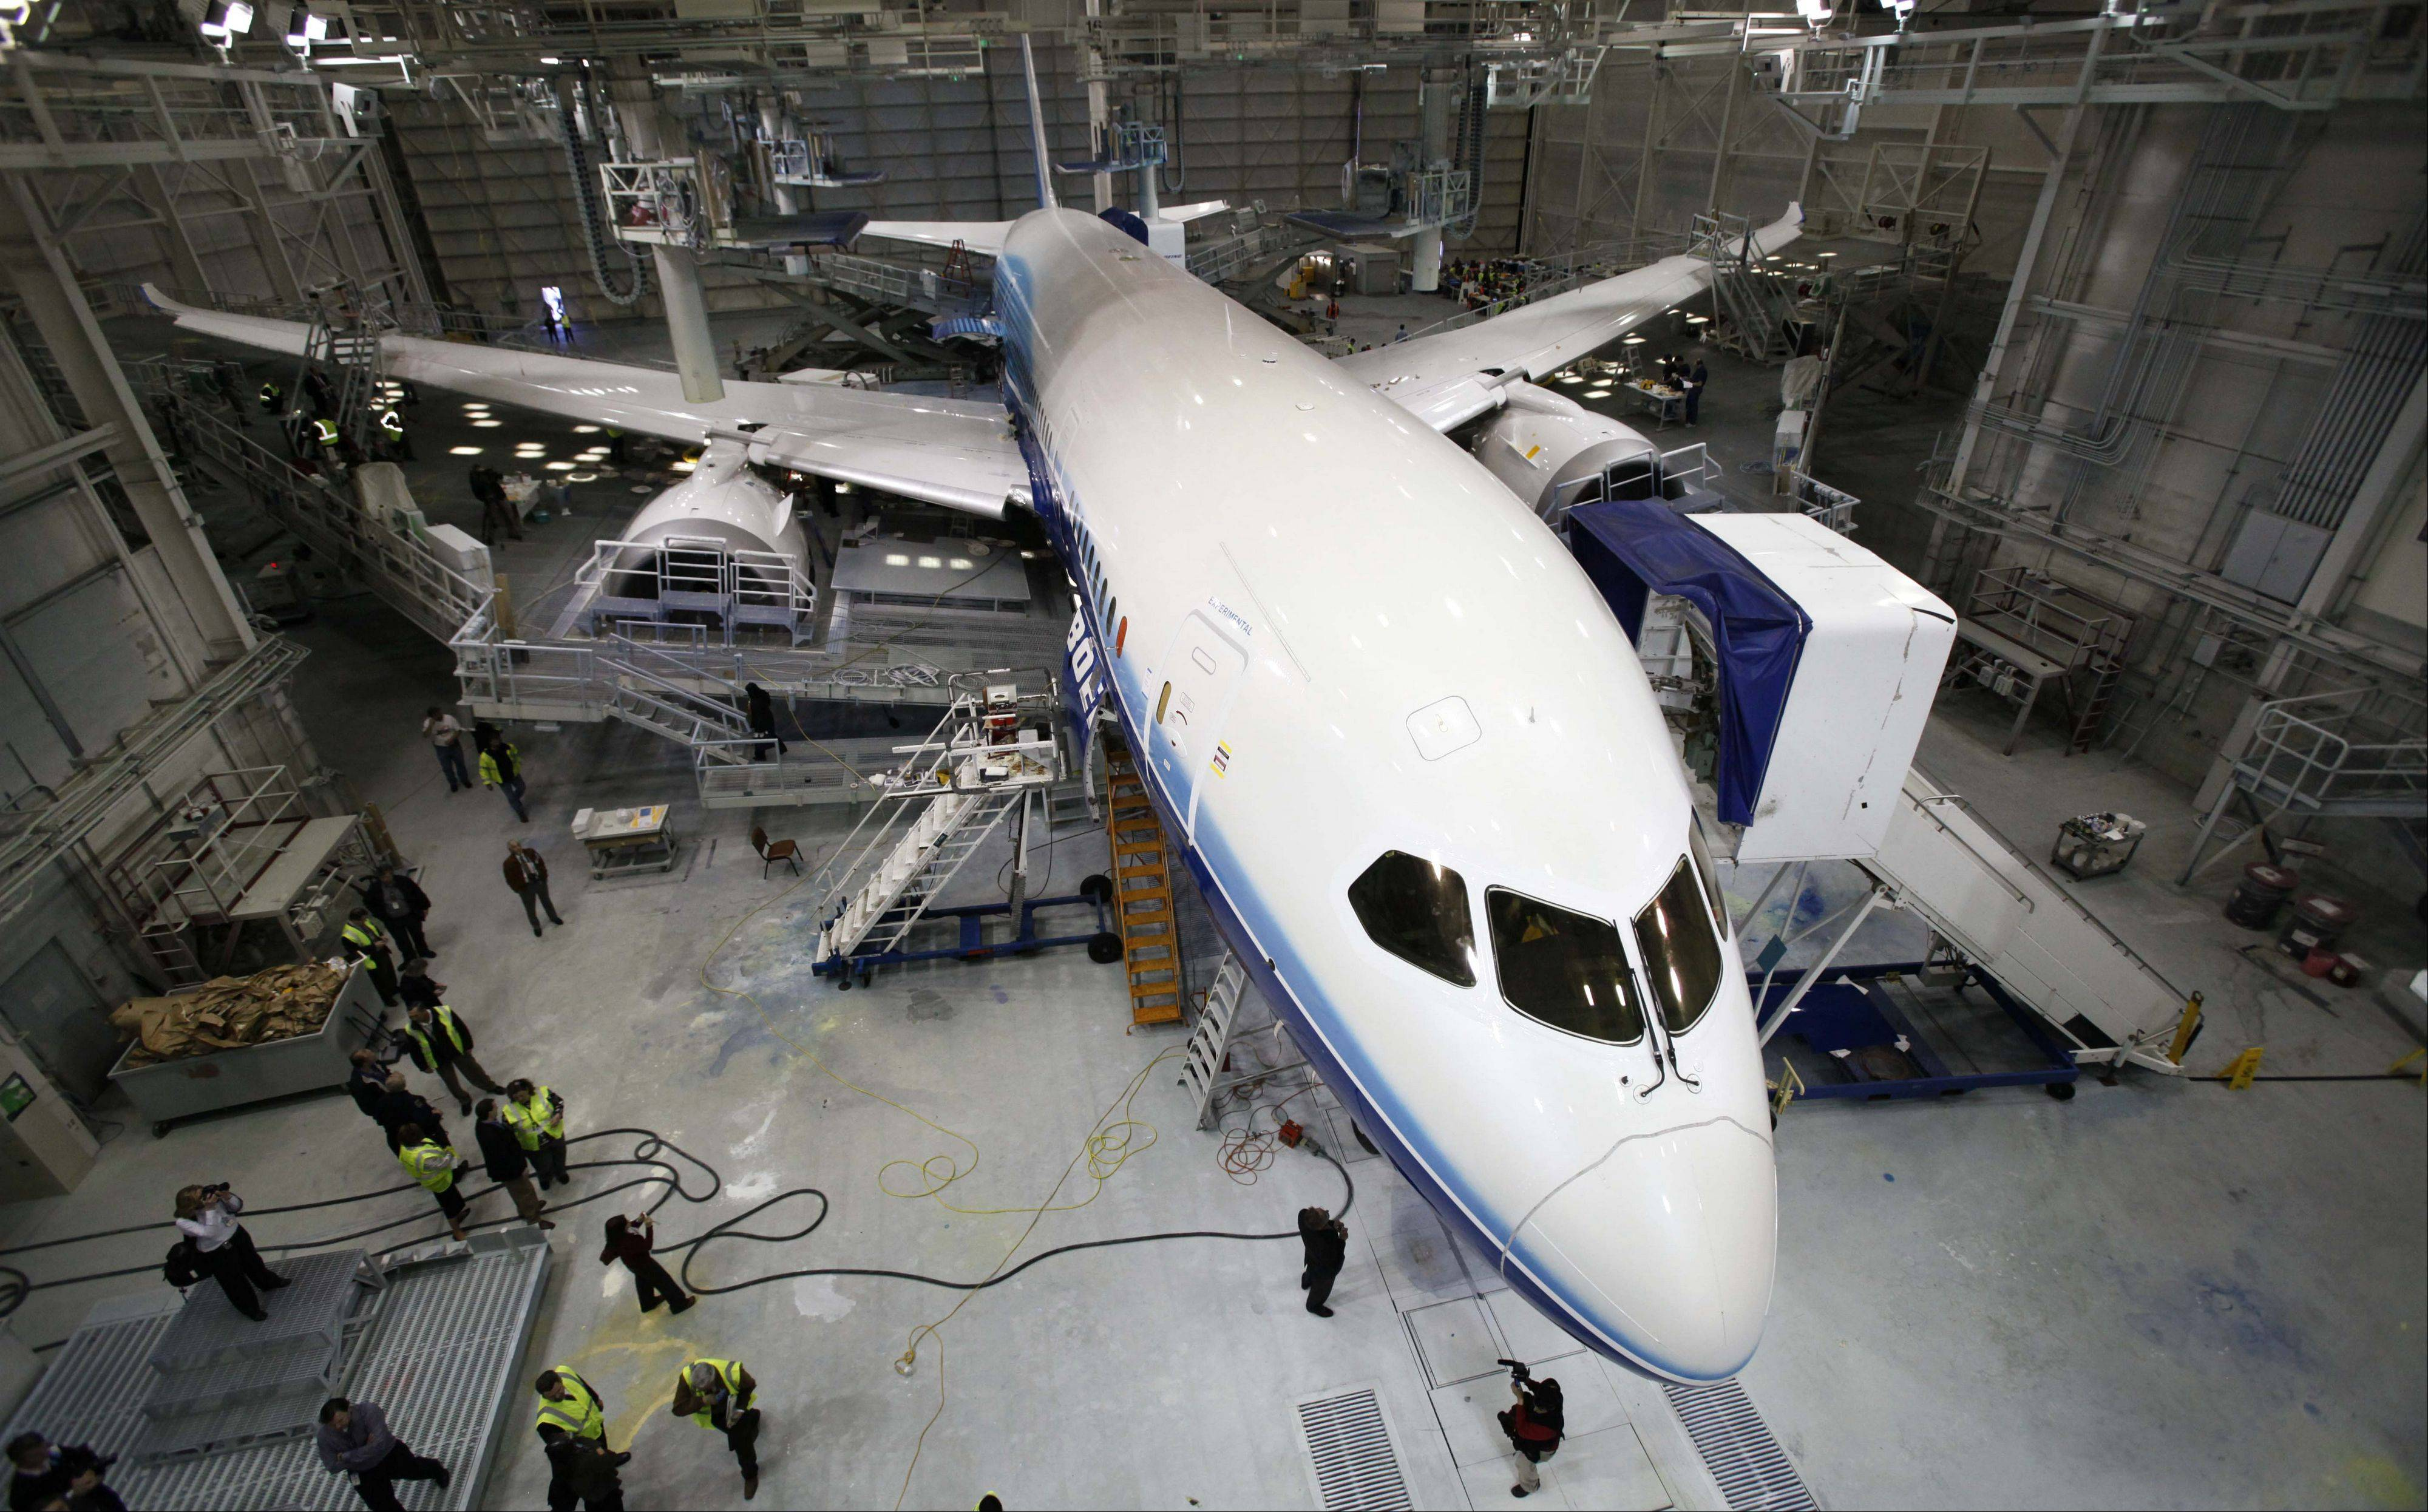 Boeing restarted deliveries of 787s on Tuesday after a four-month halt while it dealt with the smoldering batteries that had kept the planes grounded.